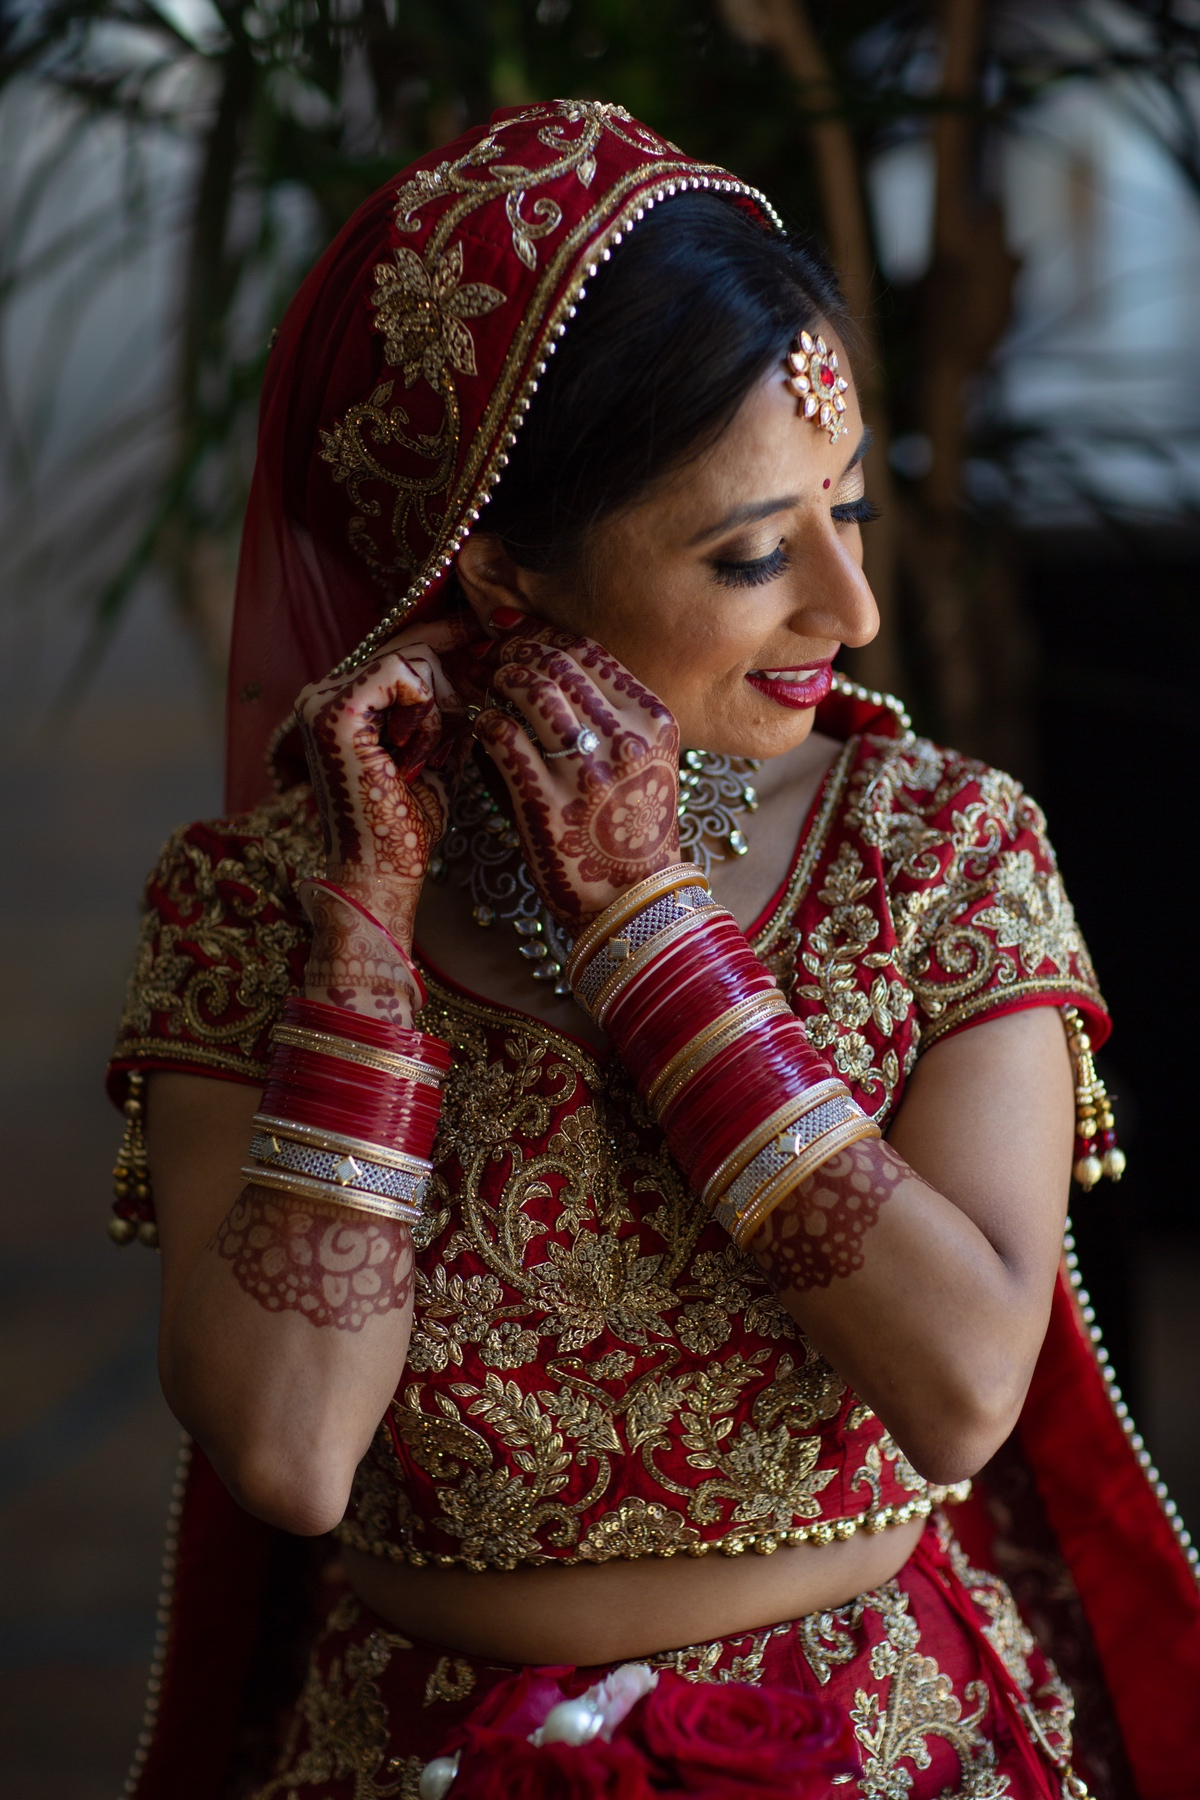 Le Cape Weddings - South Asian Wedding - Chicago Wedding Photographer P&V-55.jpg